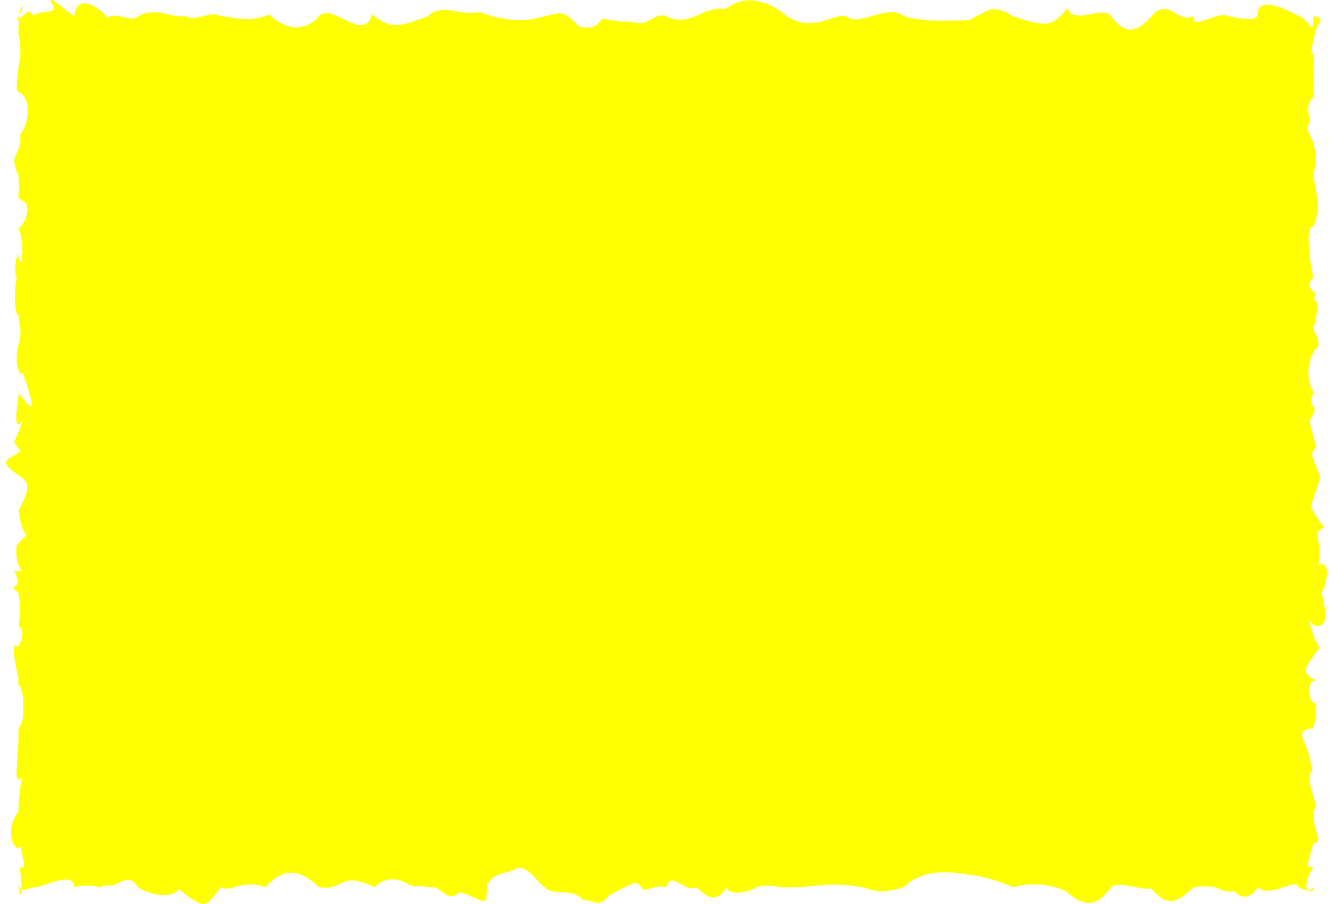 rectangle yellow Clipart illustration in PNG, SVG